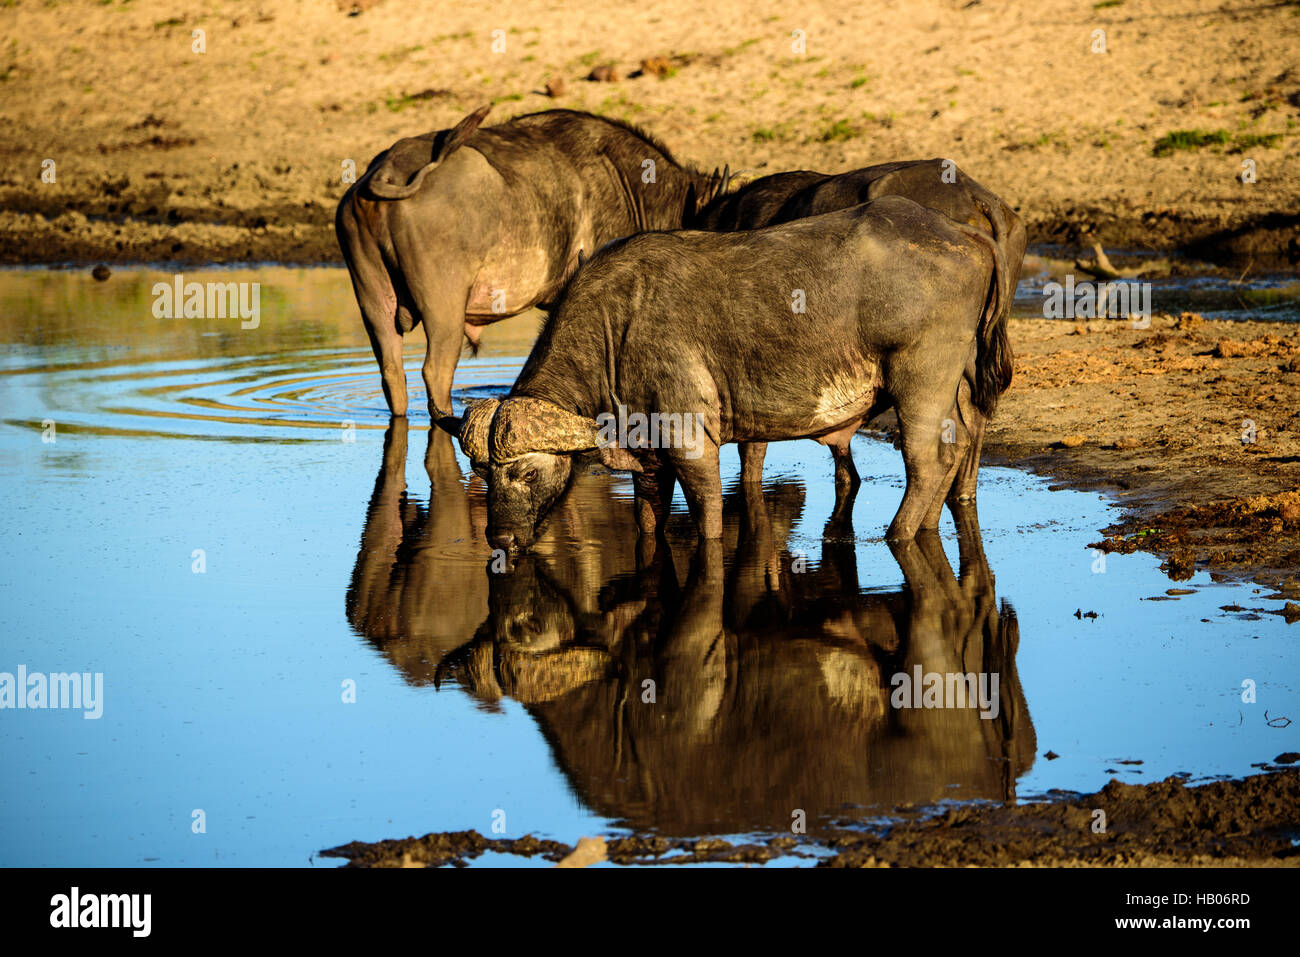 Buffalos and their reflections at the waterhole - Stock Image